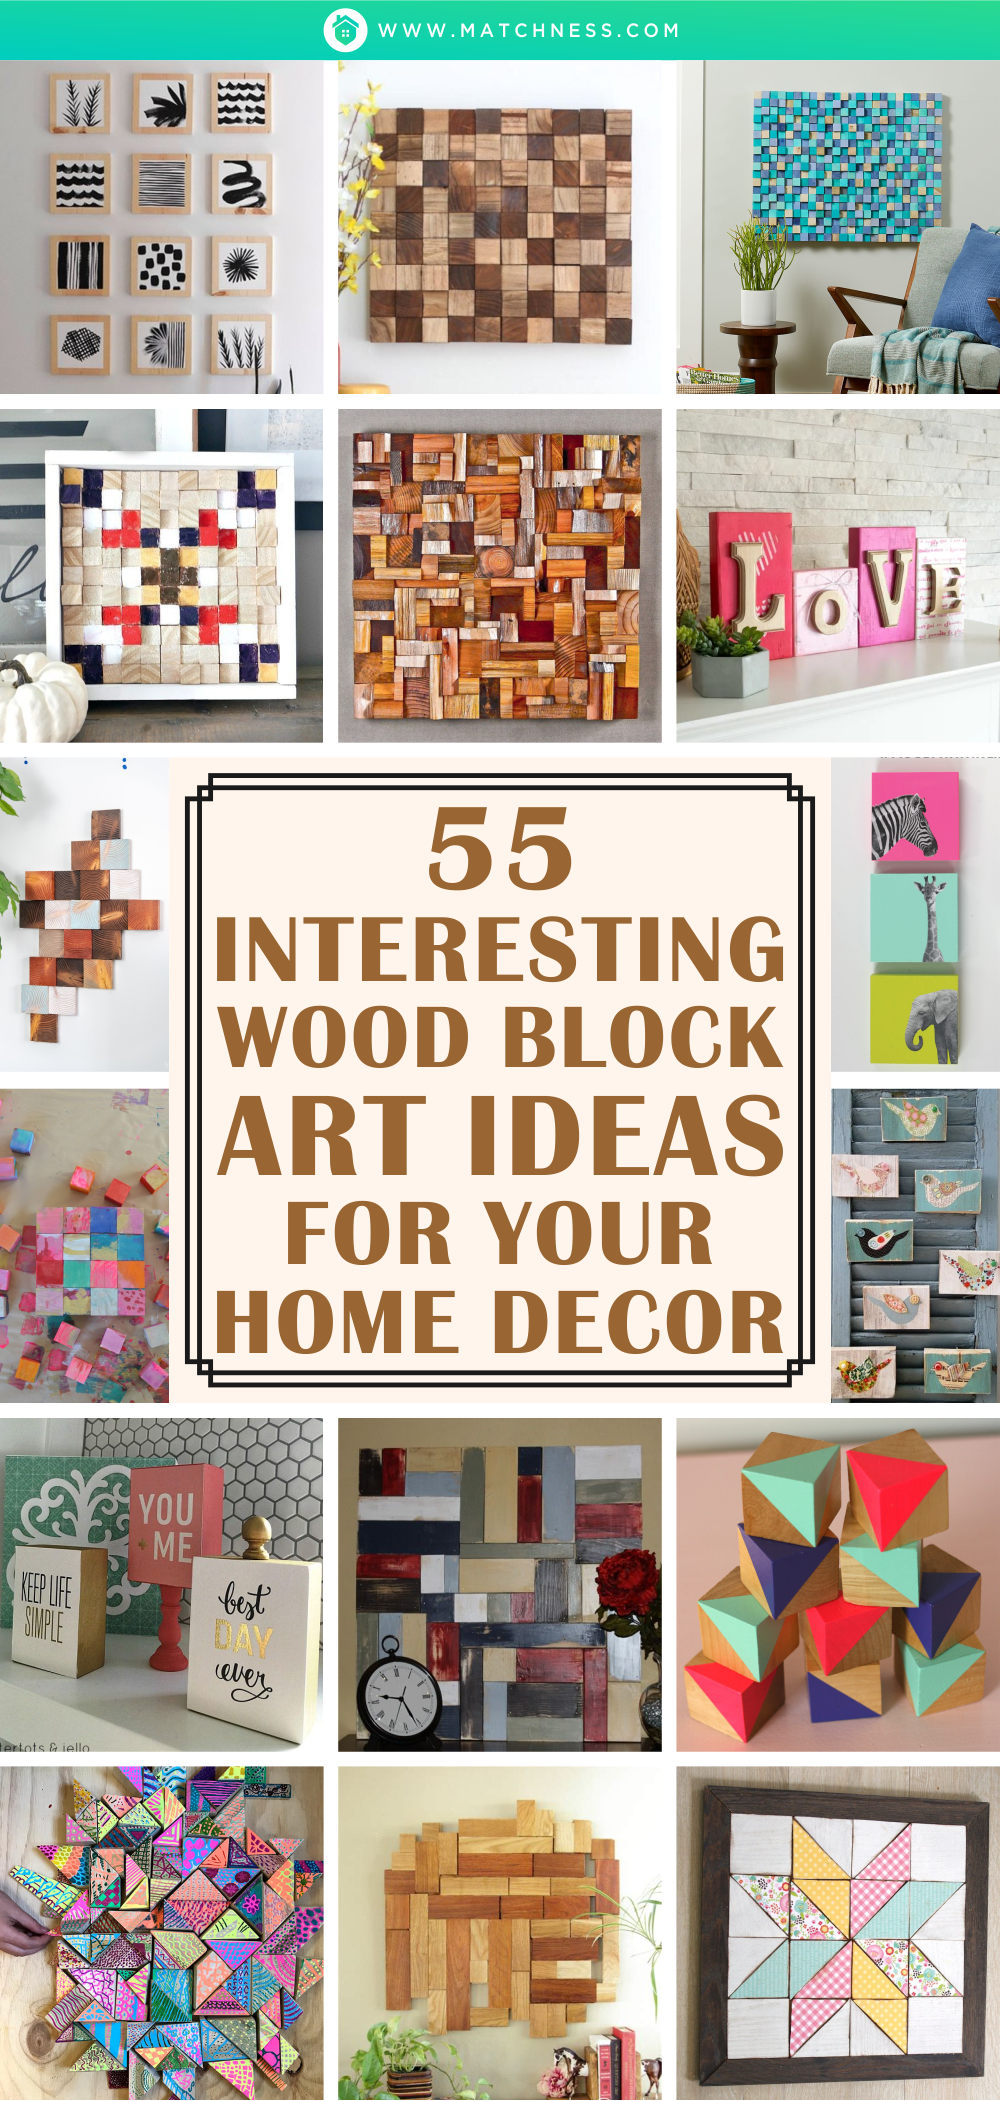 55-interesting-wood-block-art-ideas-for-your-home-decor1